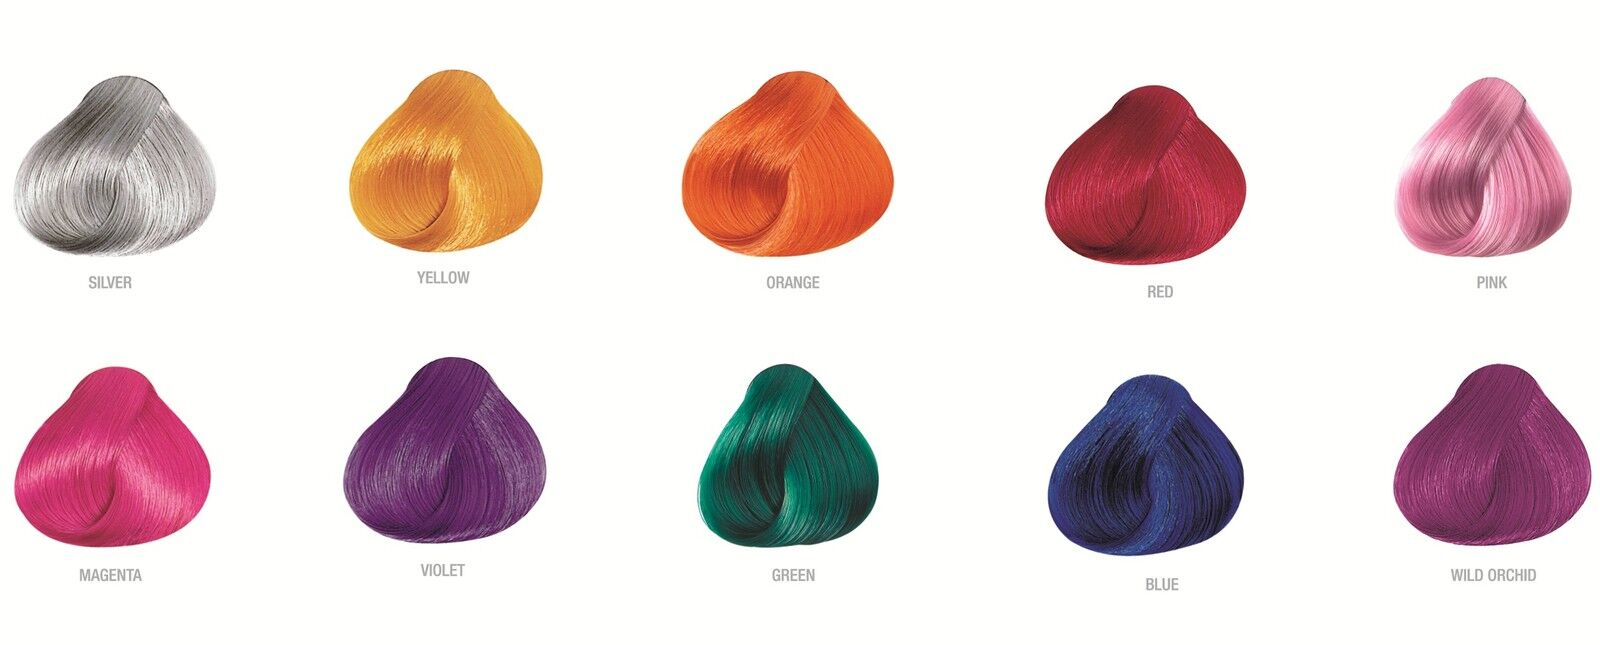 Pravana Chroma Silk Vivids Demi Permanent Hair Dye All Colors